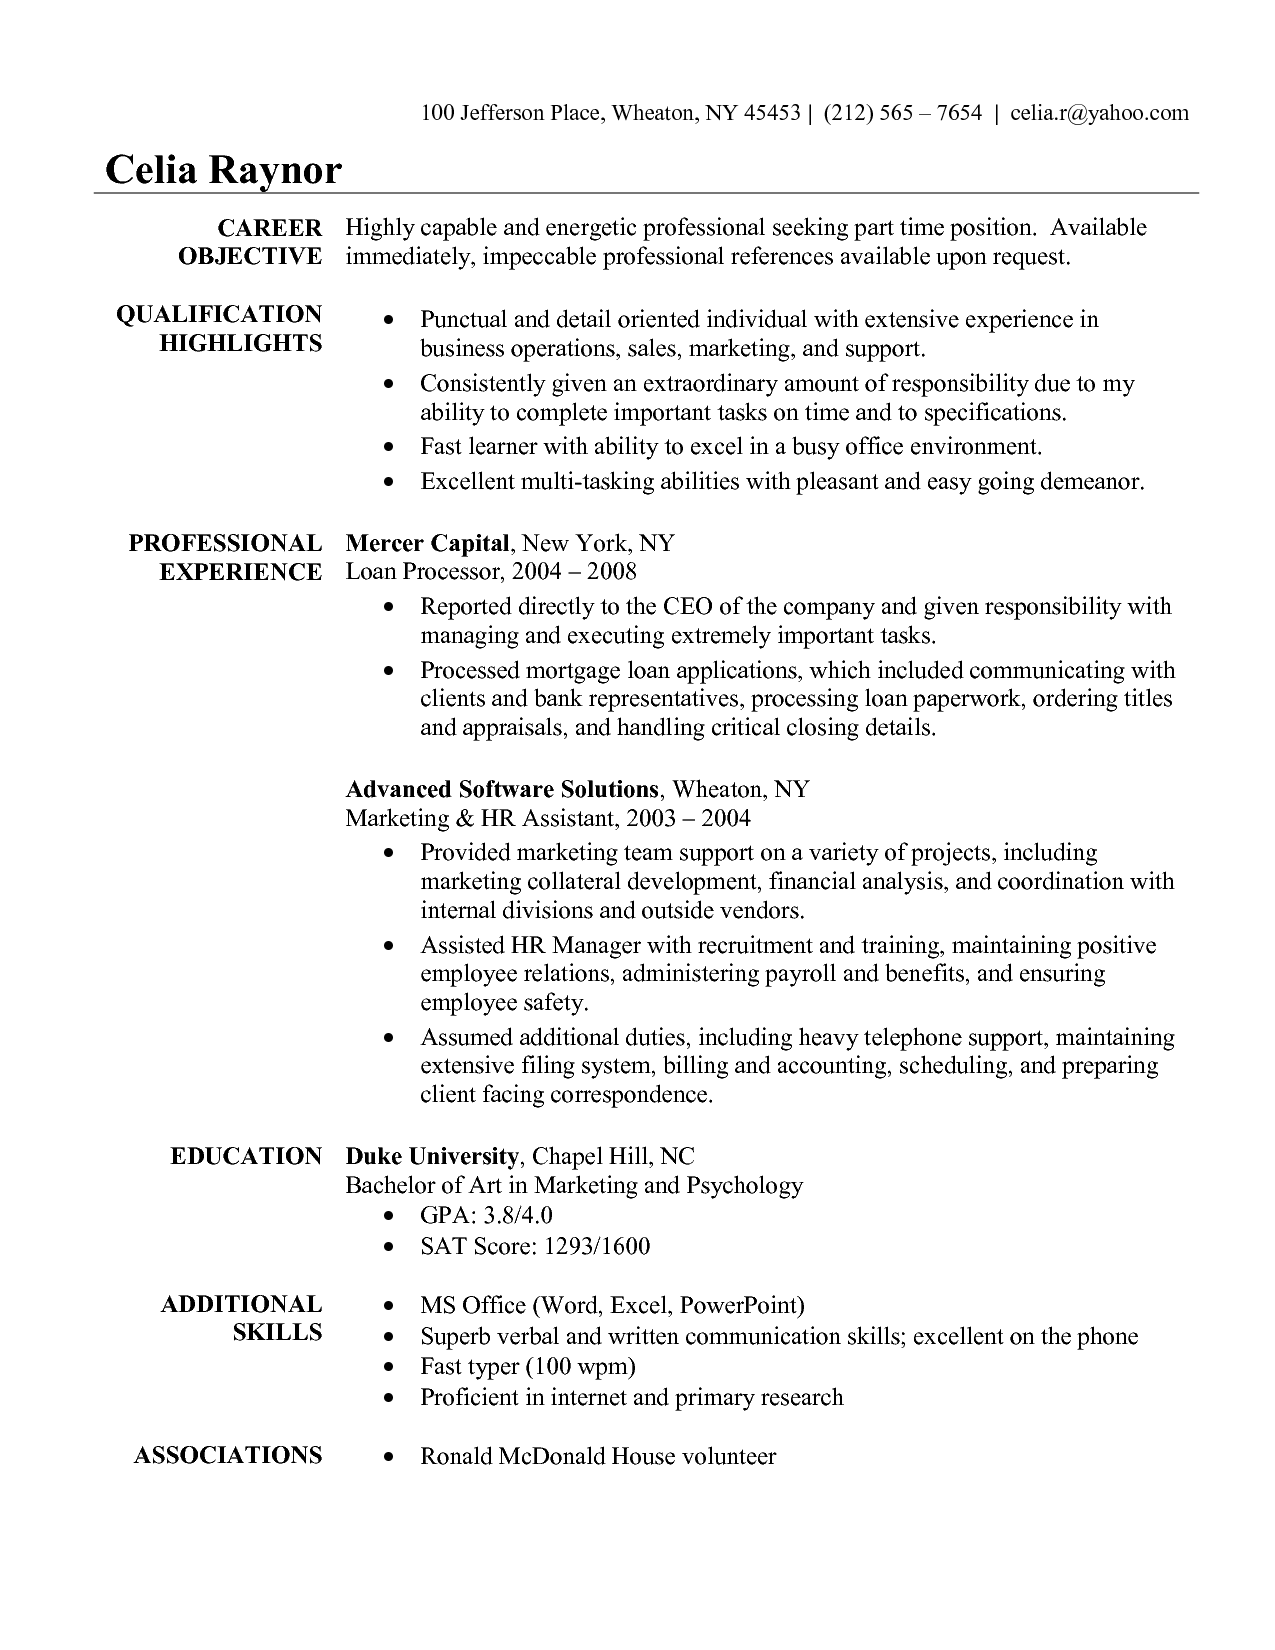 proficient resume skills resume skills proficient resume templates entry level resume skills proficient resume templates entry level